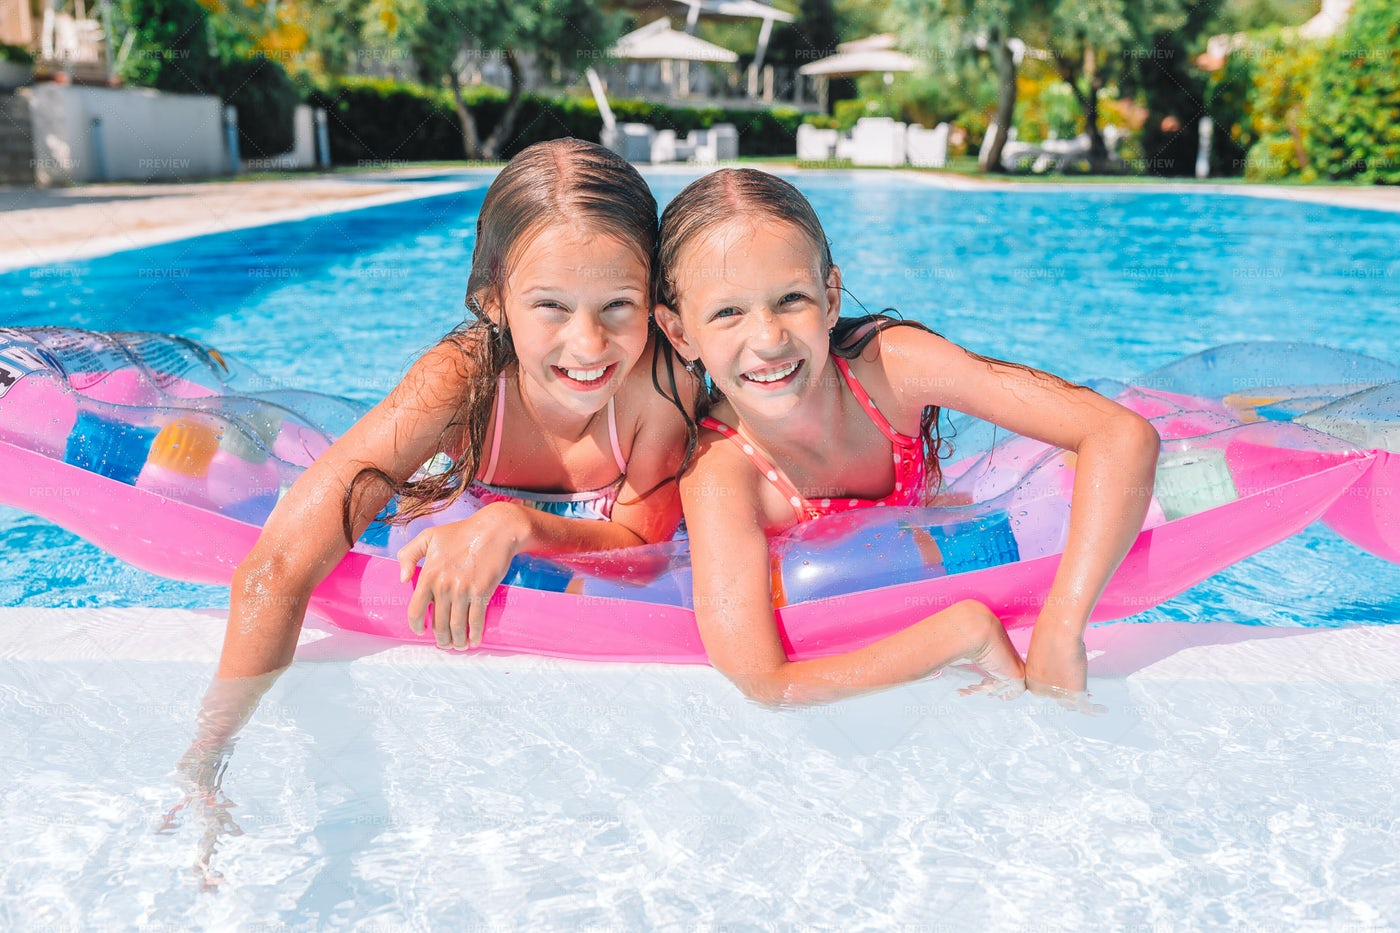 Sisters In The Pool Together: Stock Photos